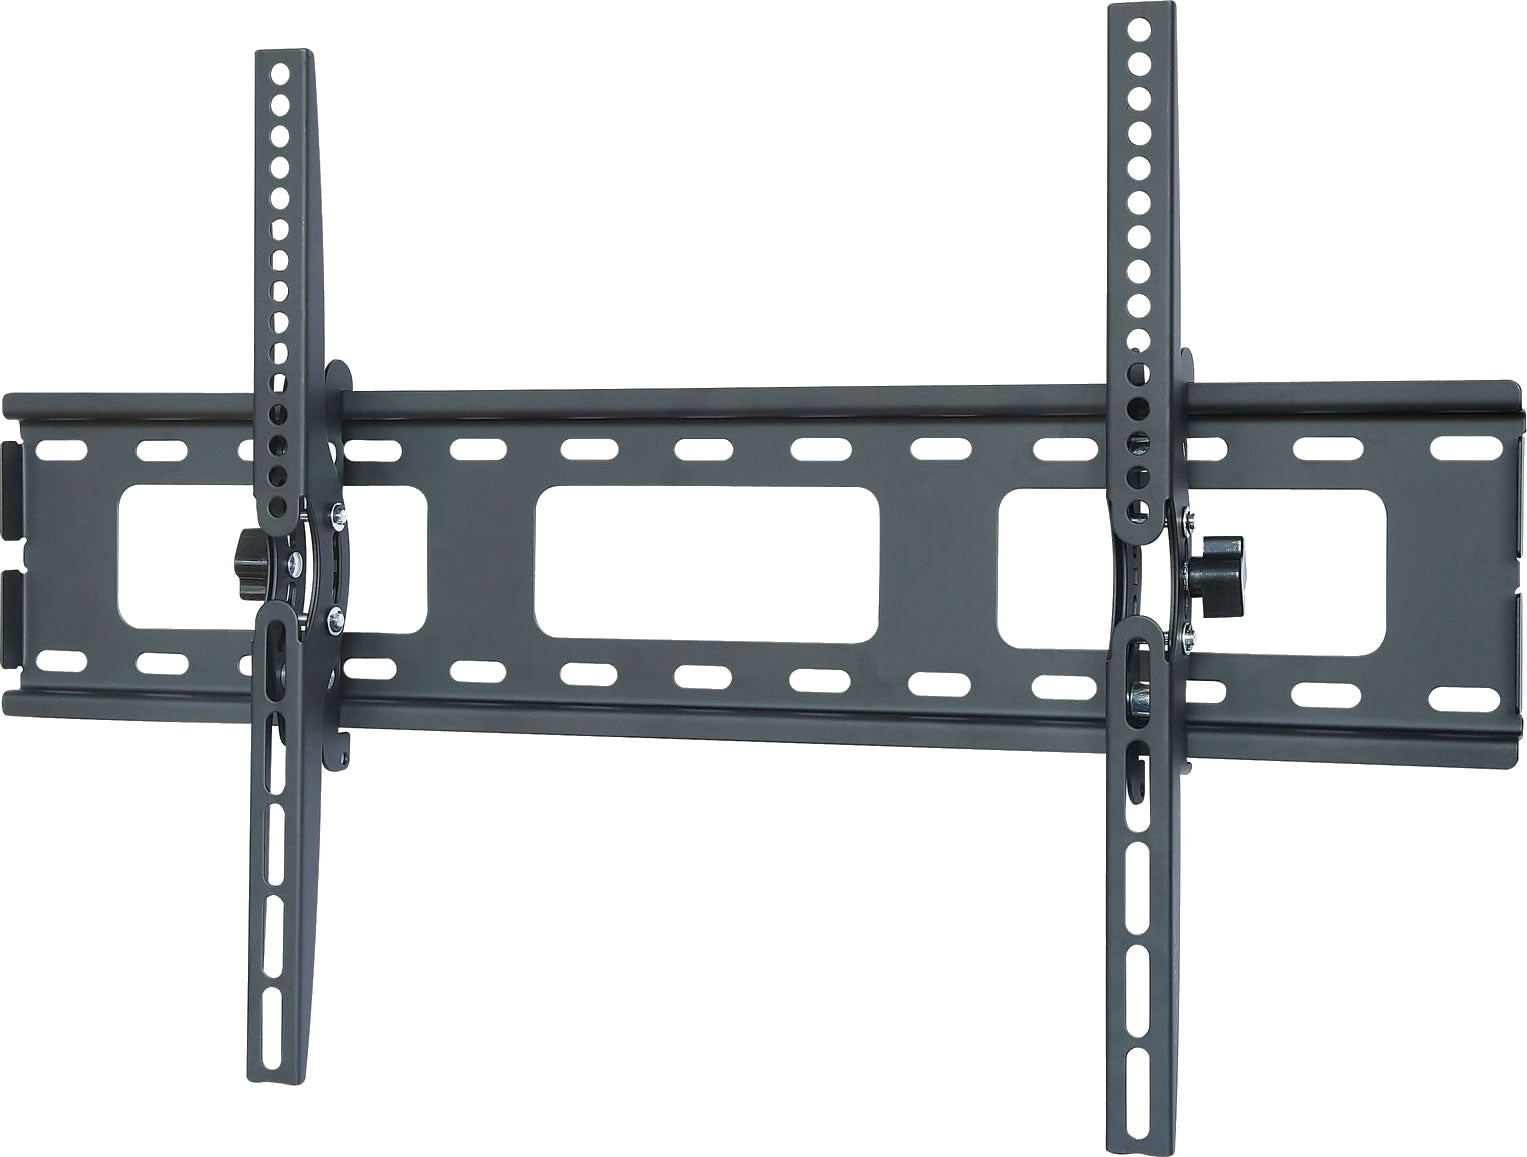 64-1131L Tilt LCD LED TV / Monitor Wall Mount Bracket for 32-52 inches TVs